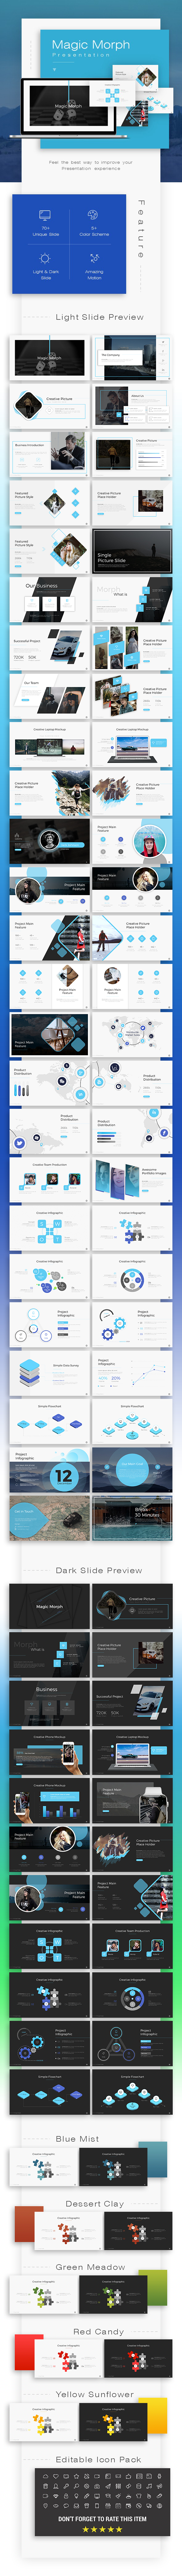 Magic Morph Powerpoint Template - Business PowerPoint Templates